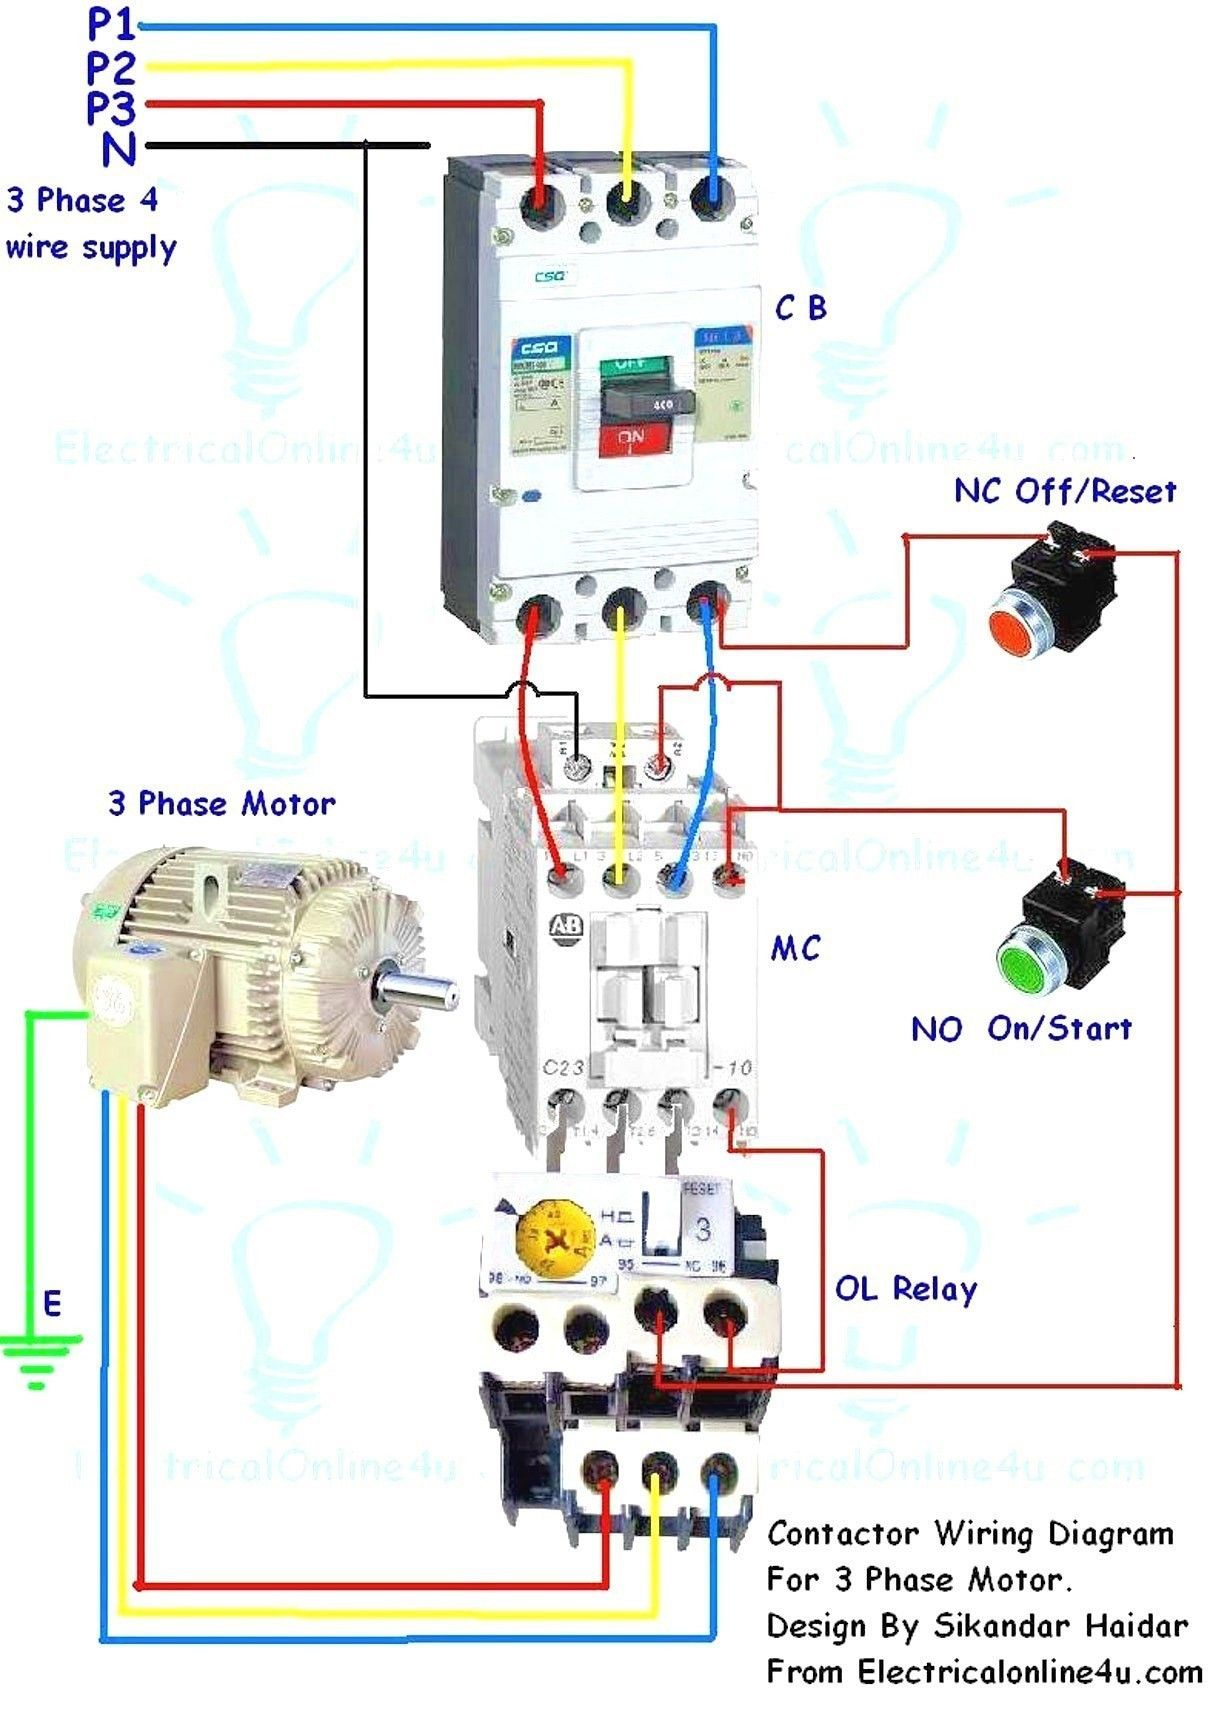 medium resolution of 240 volt contactor wiring diagram free download wiring diagram view 3 phase wire wiring diagram free